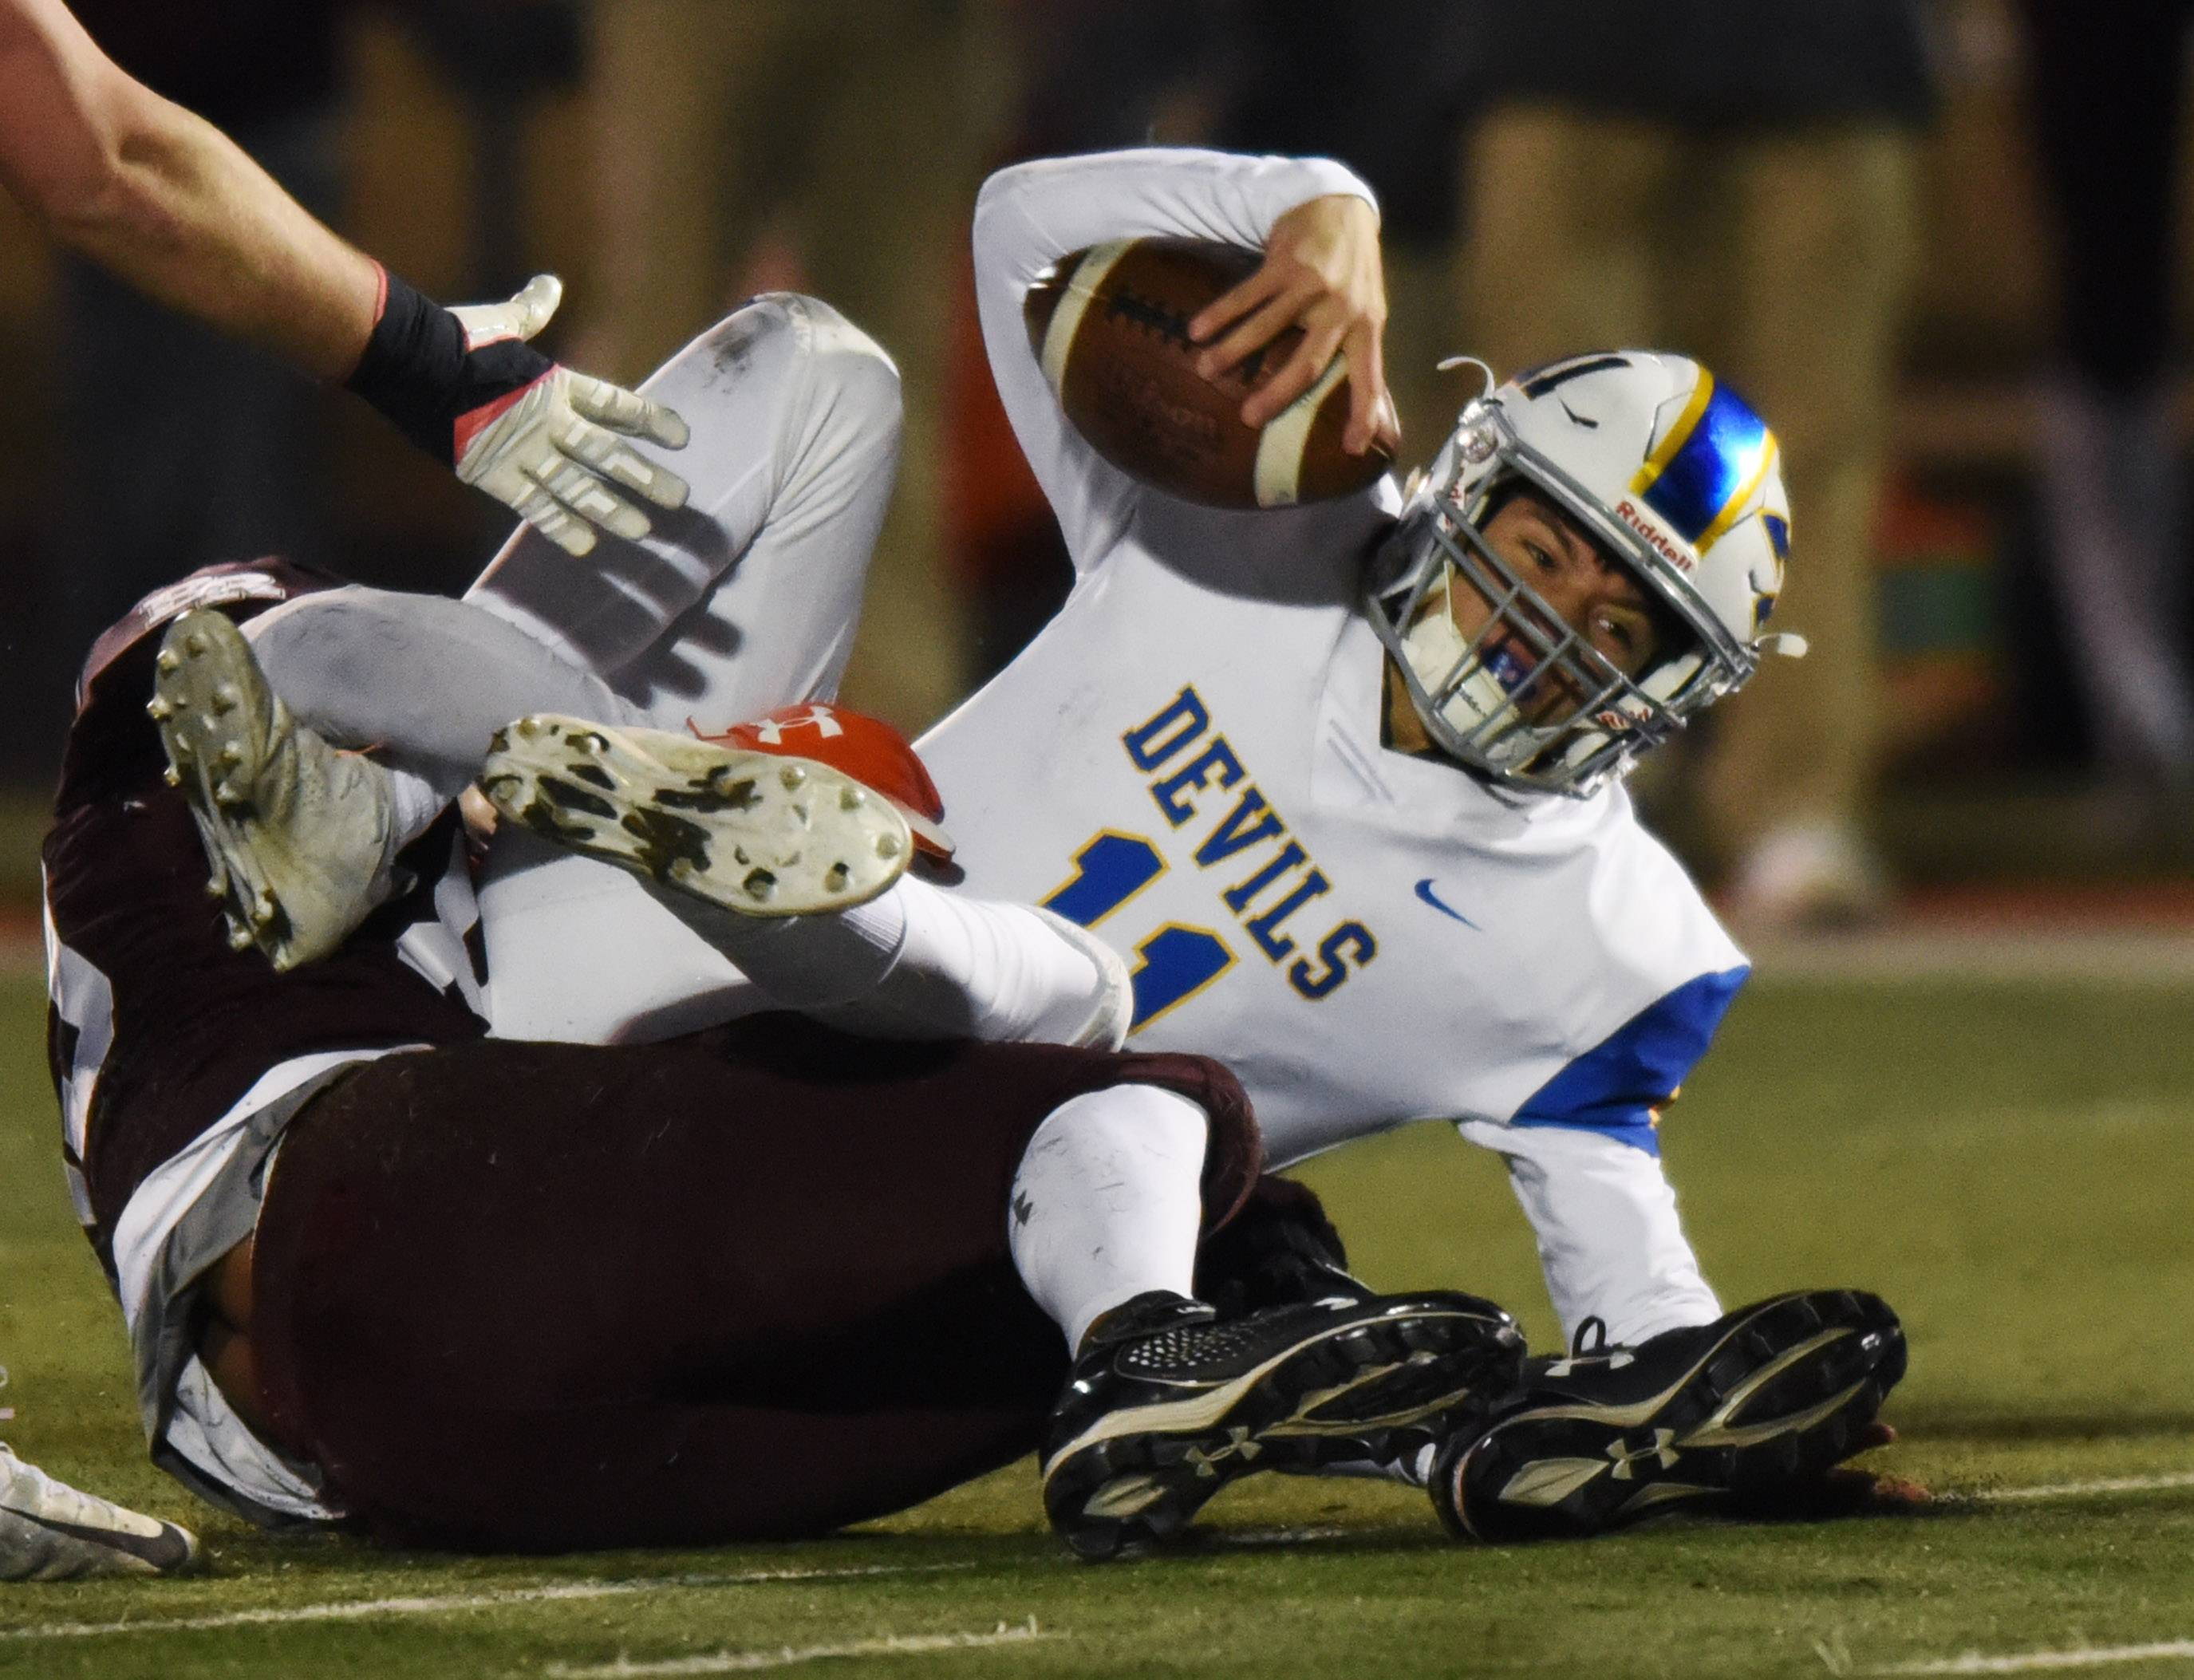 Warren's Phil Hird gets tackled during the Class 8A state quarterfinal against Brother Rice in Chicago Saturday.